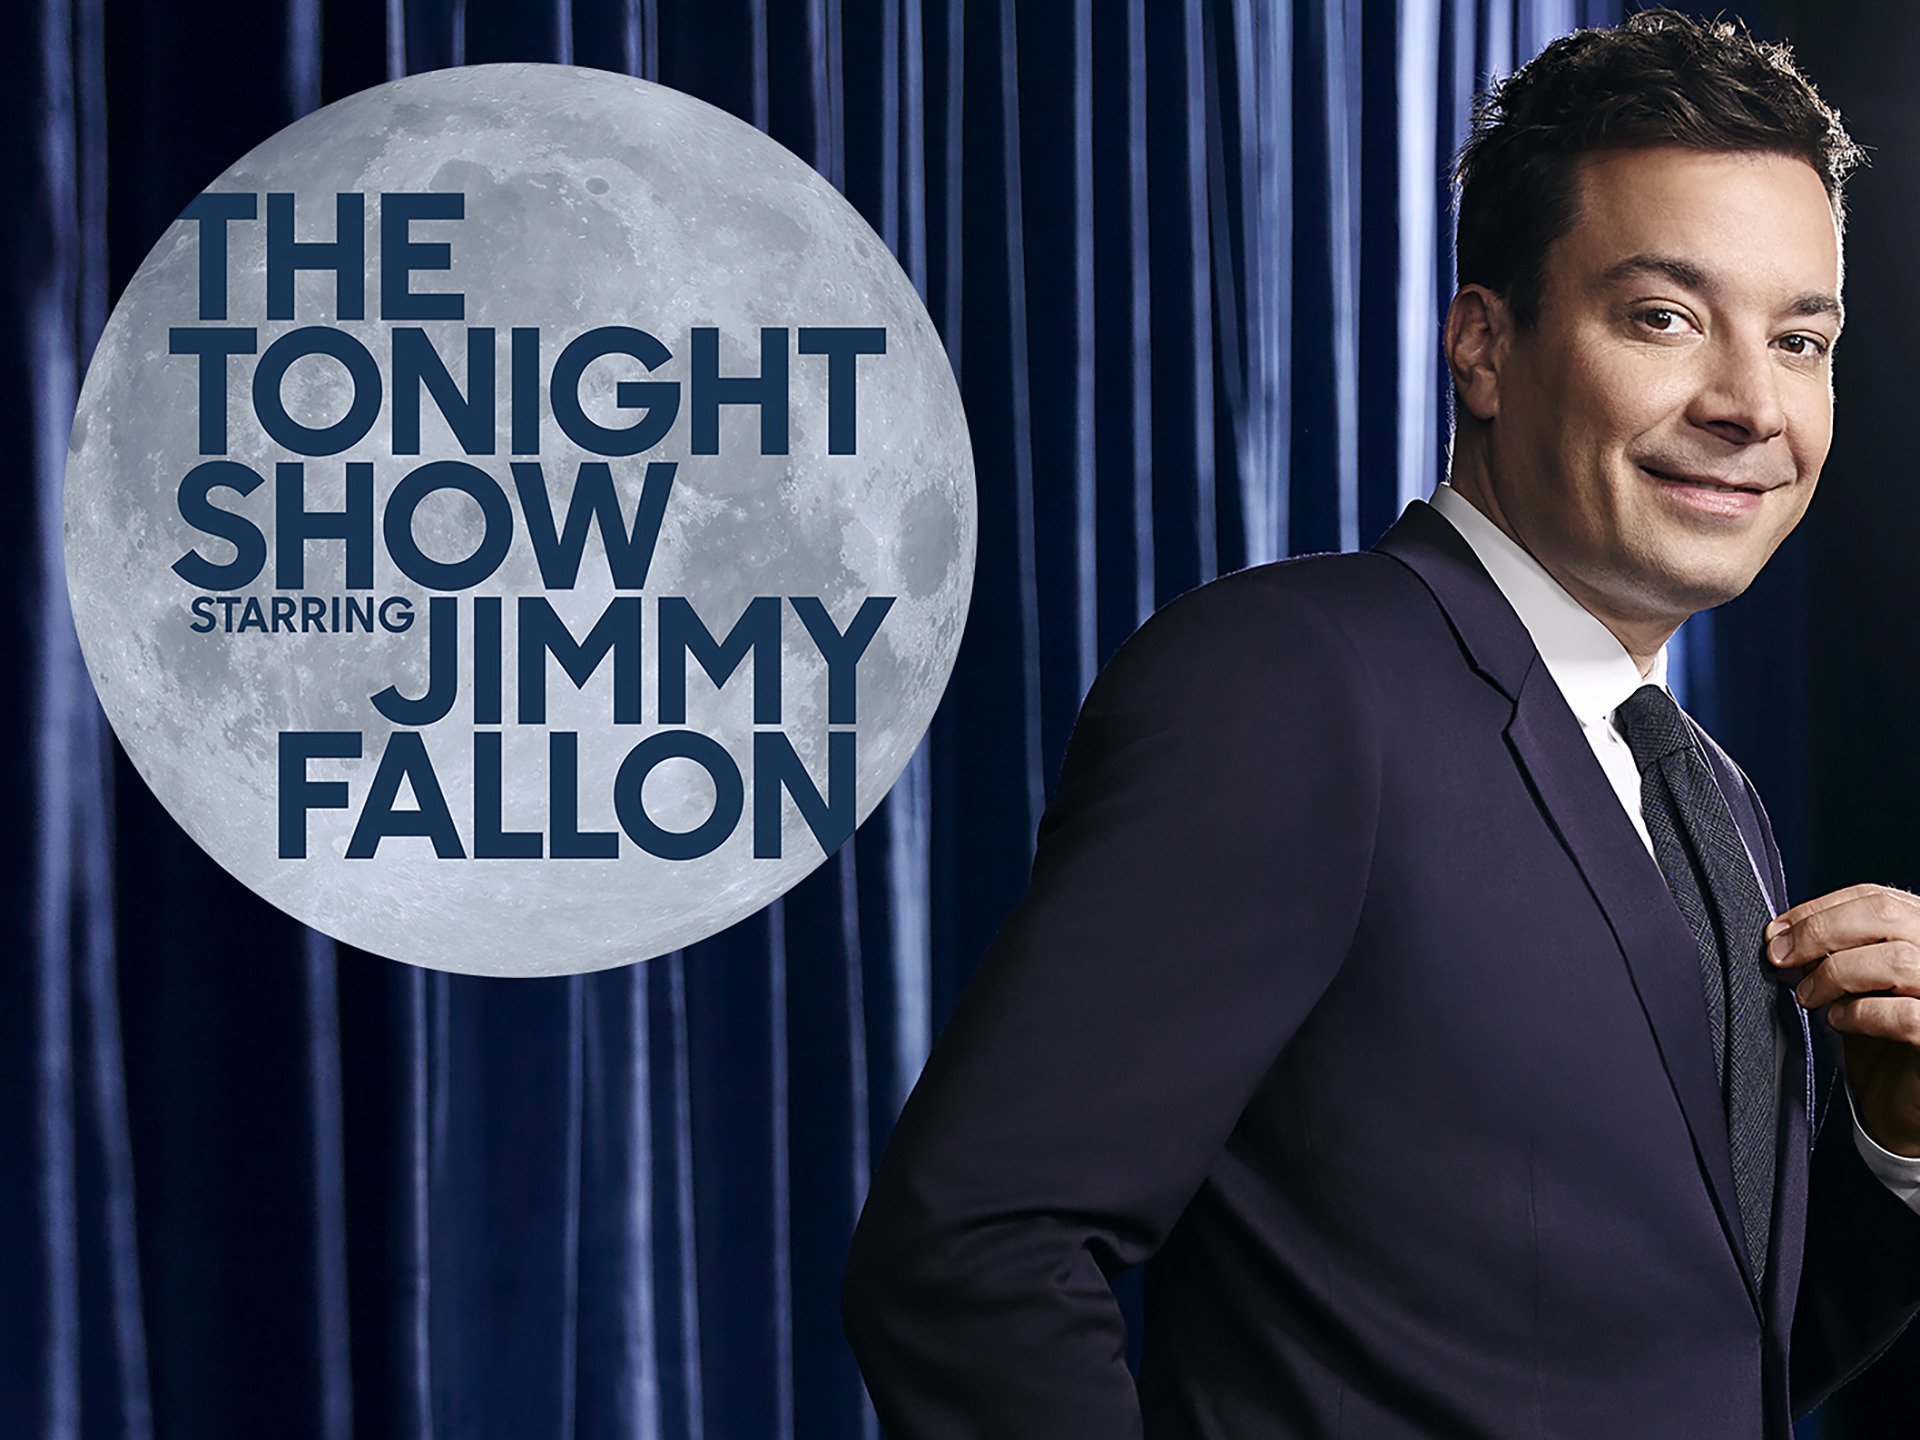 Watch Highlights - The Tonight Show Starring Jimmy Fallon Season 4 | Prime Video